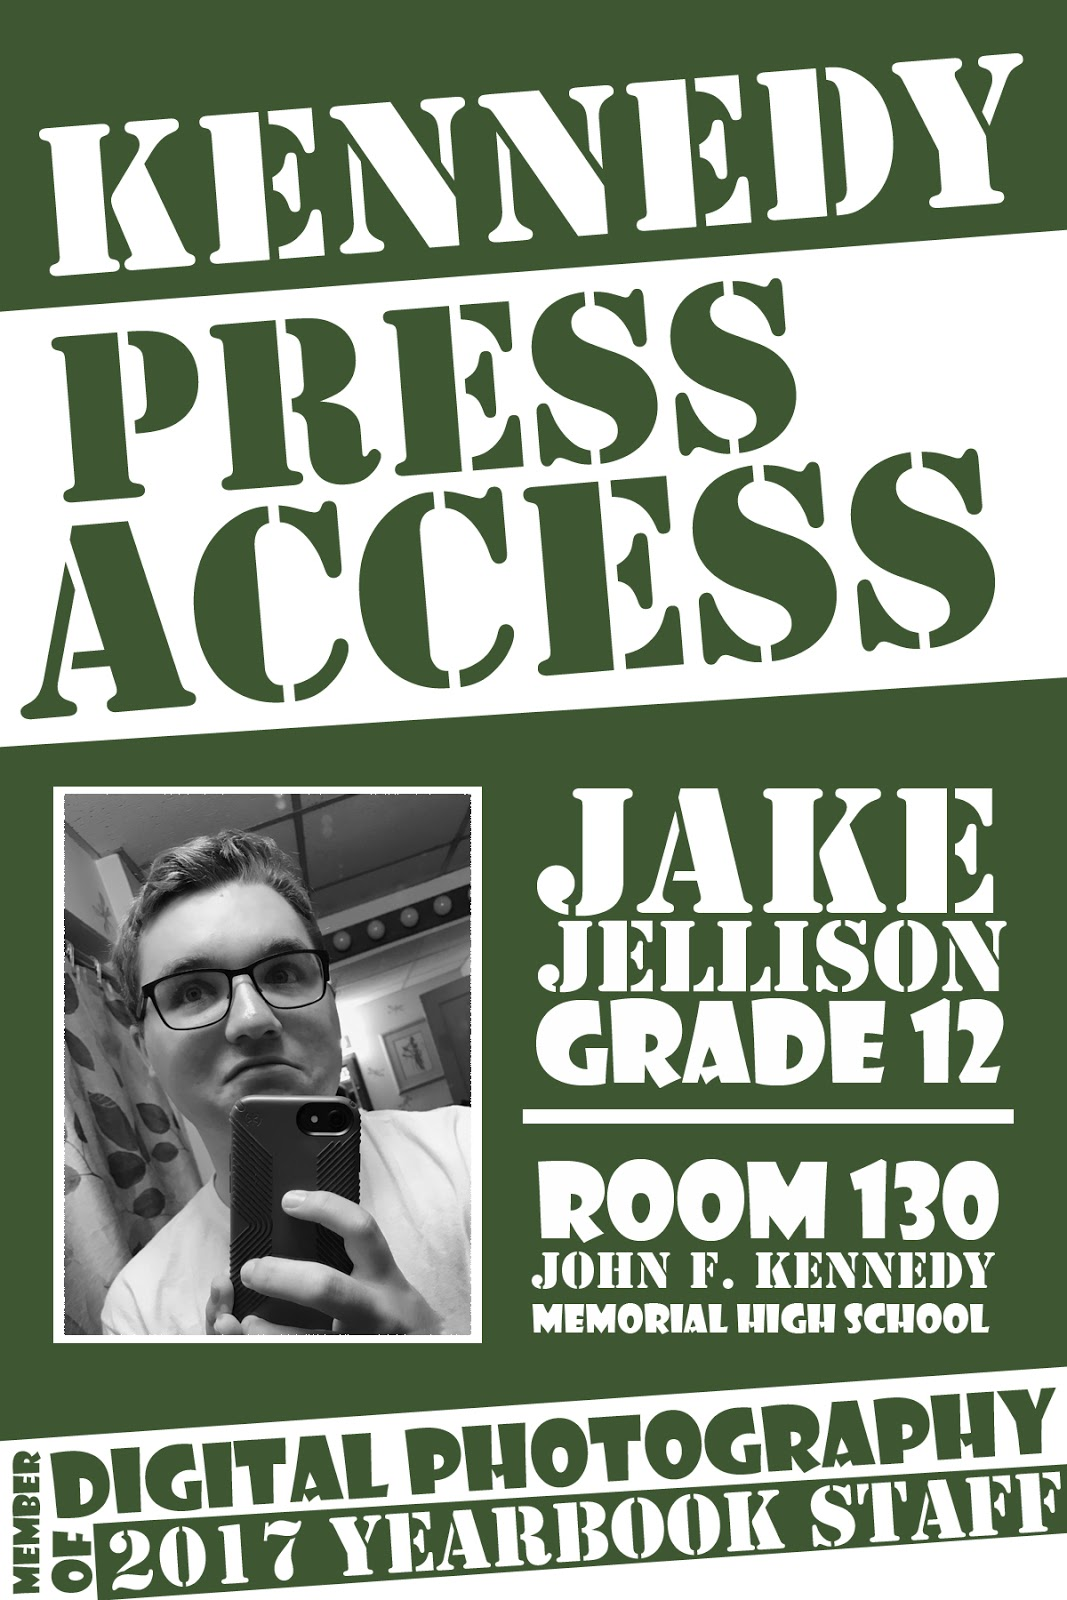 Pryor Middle School Yearbook Yearbook Press Pass Template